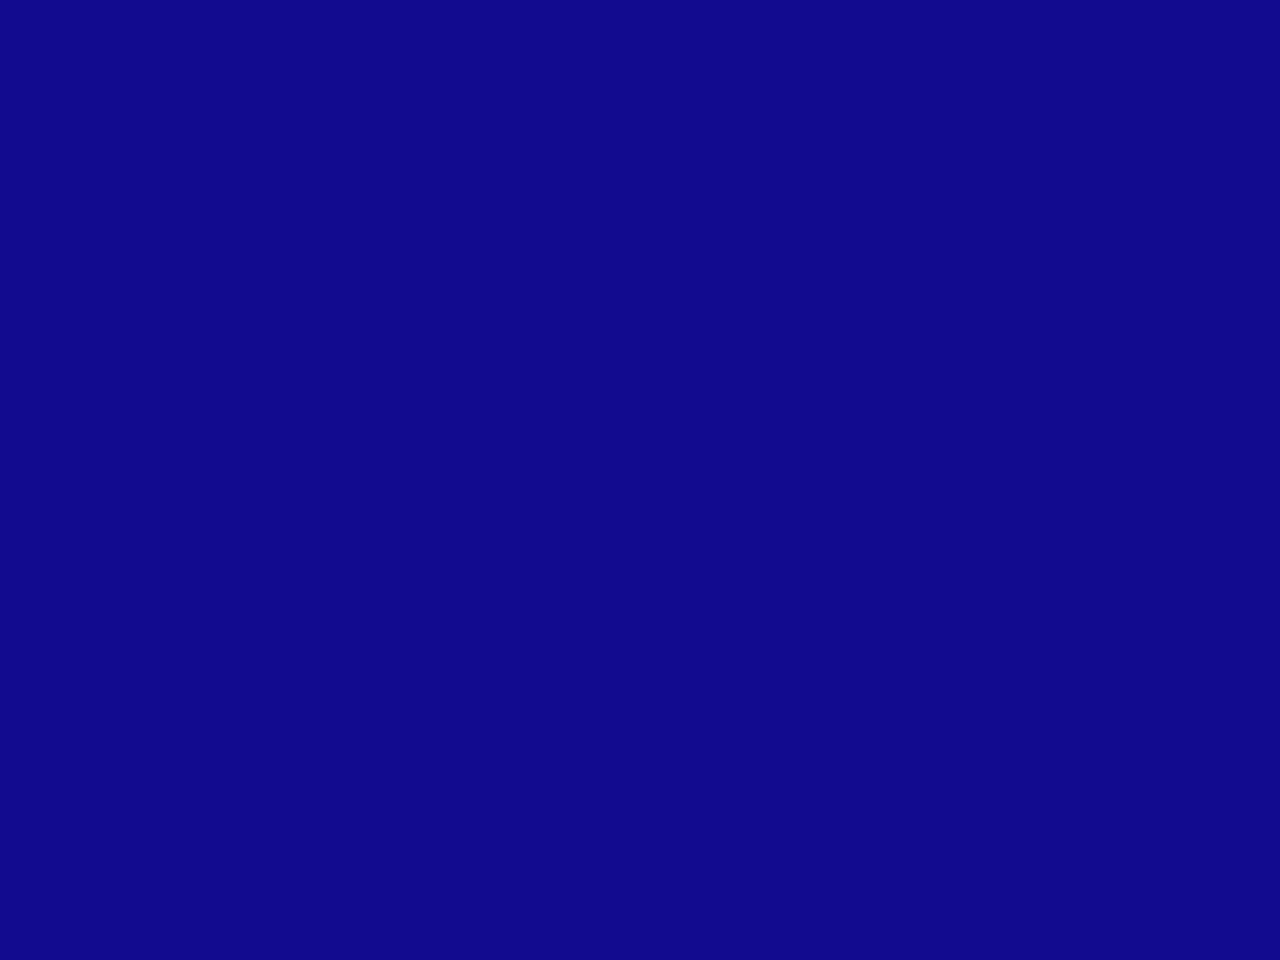 1280x960 Ultramarine Solid Color Background